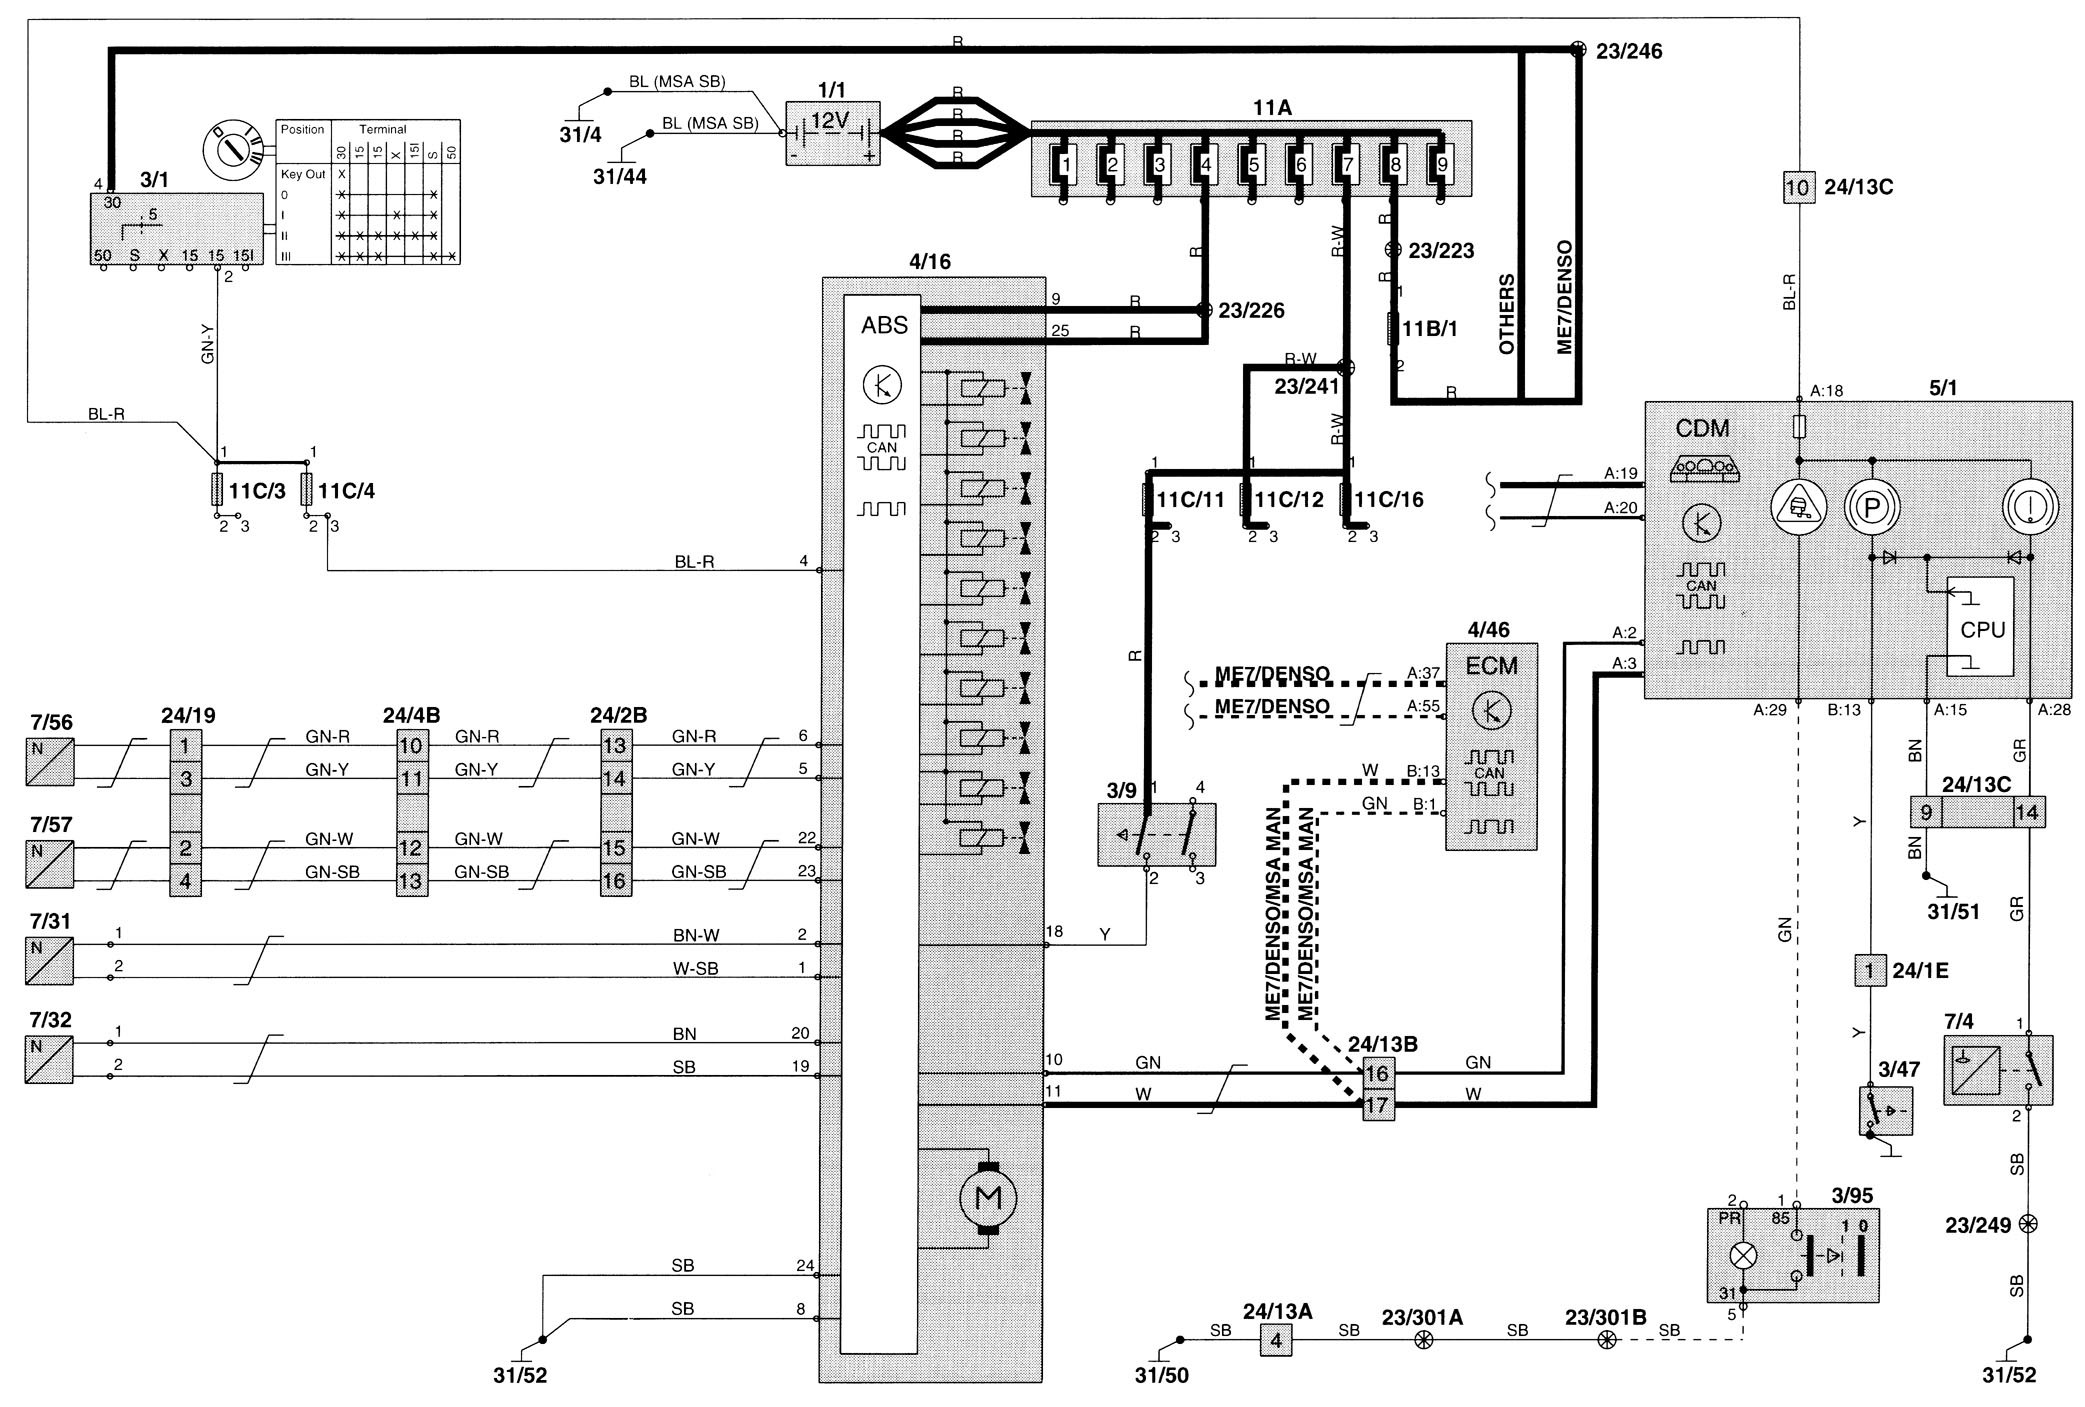 volvo c70 wiring diagram brake control 1999 volvo c70 (1999) wiring diagrams brake control carknowledge c70 wiring diagram at soozxer.org